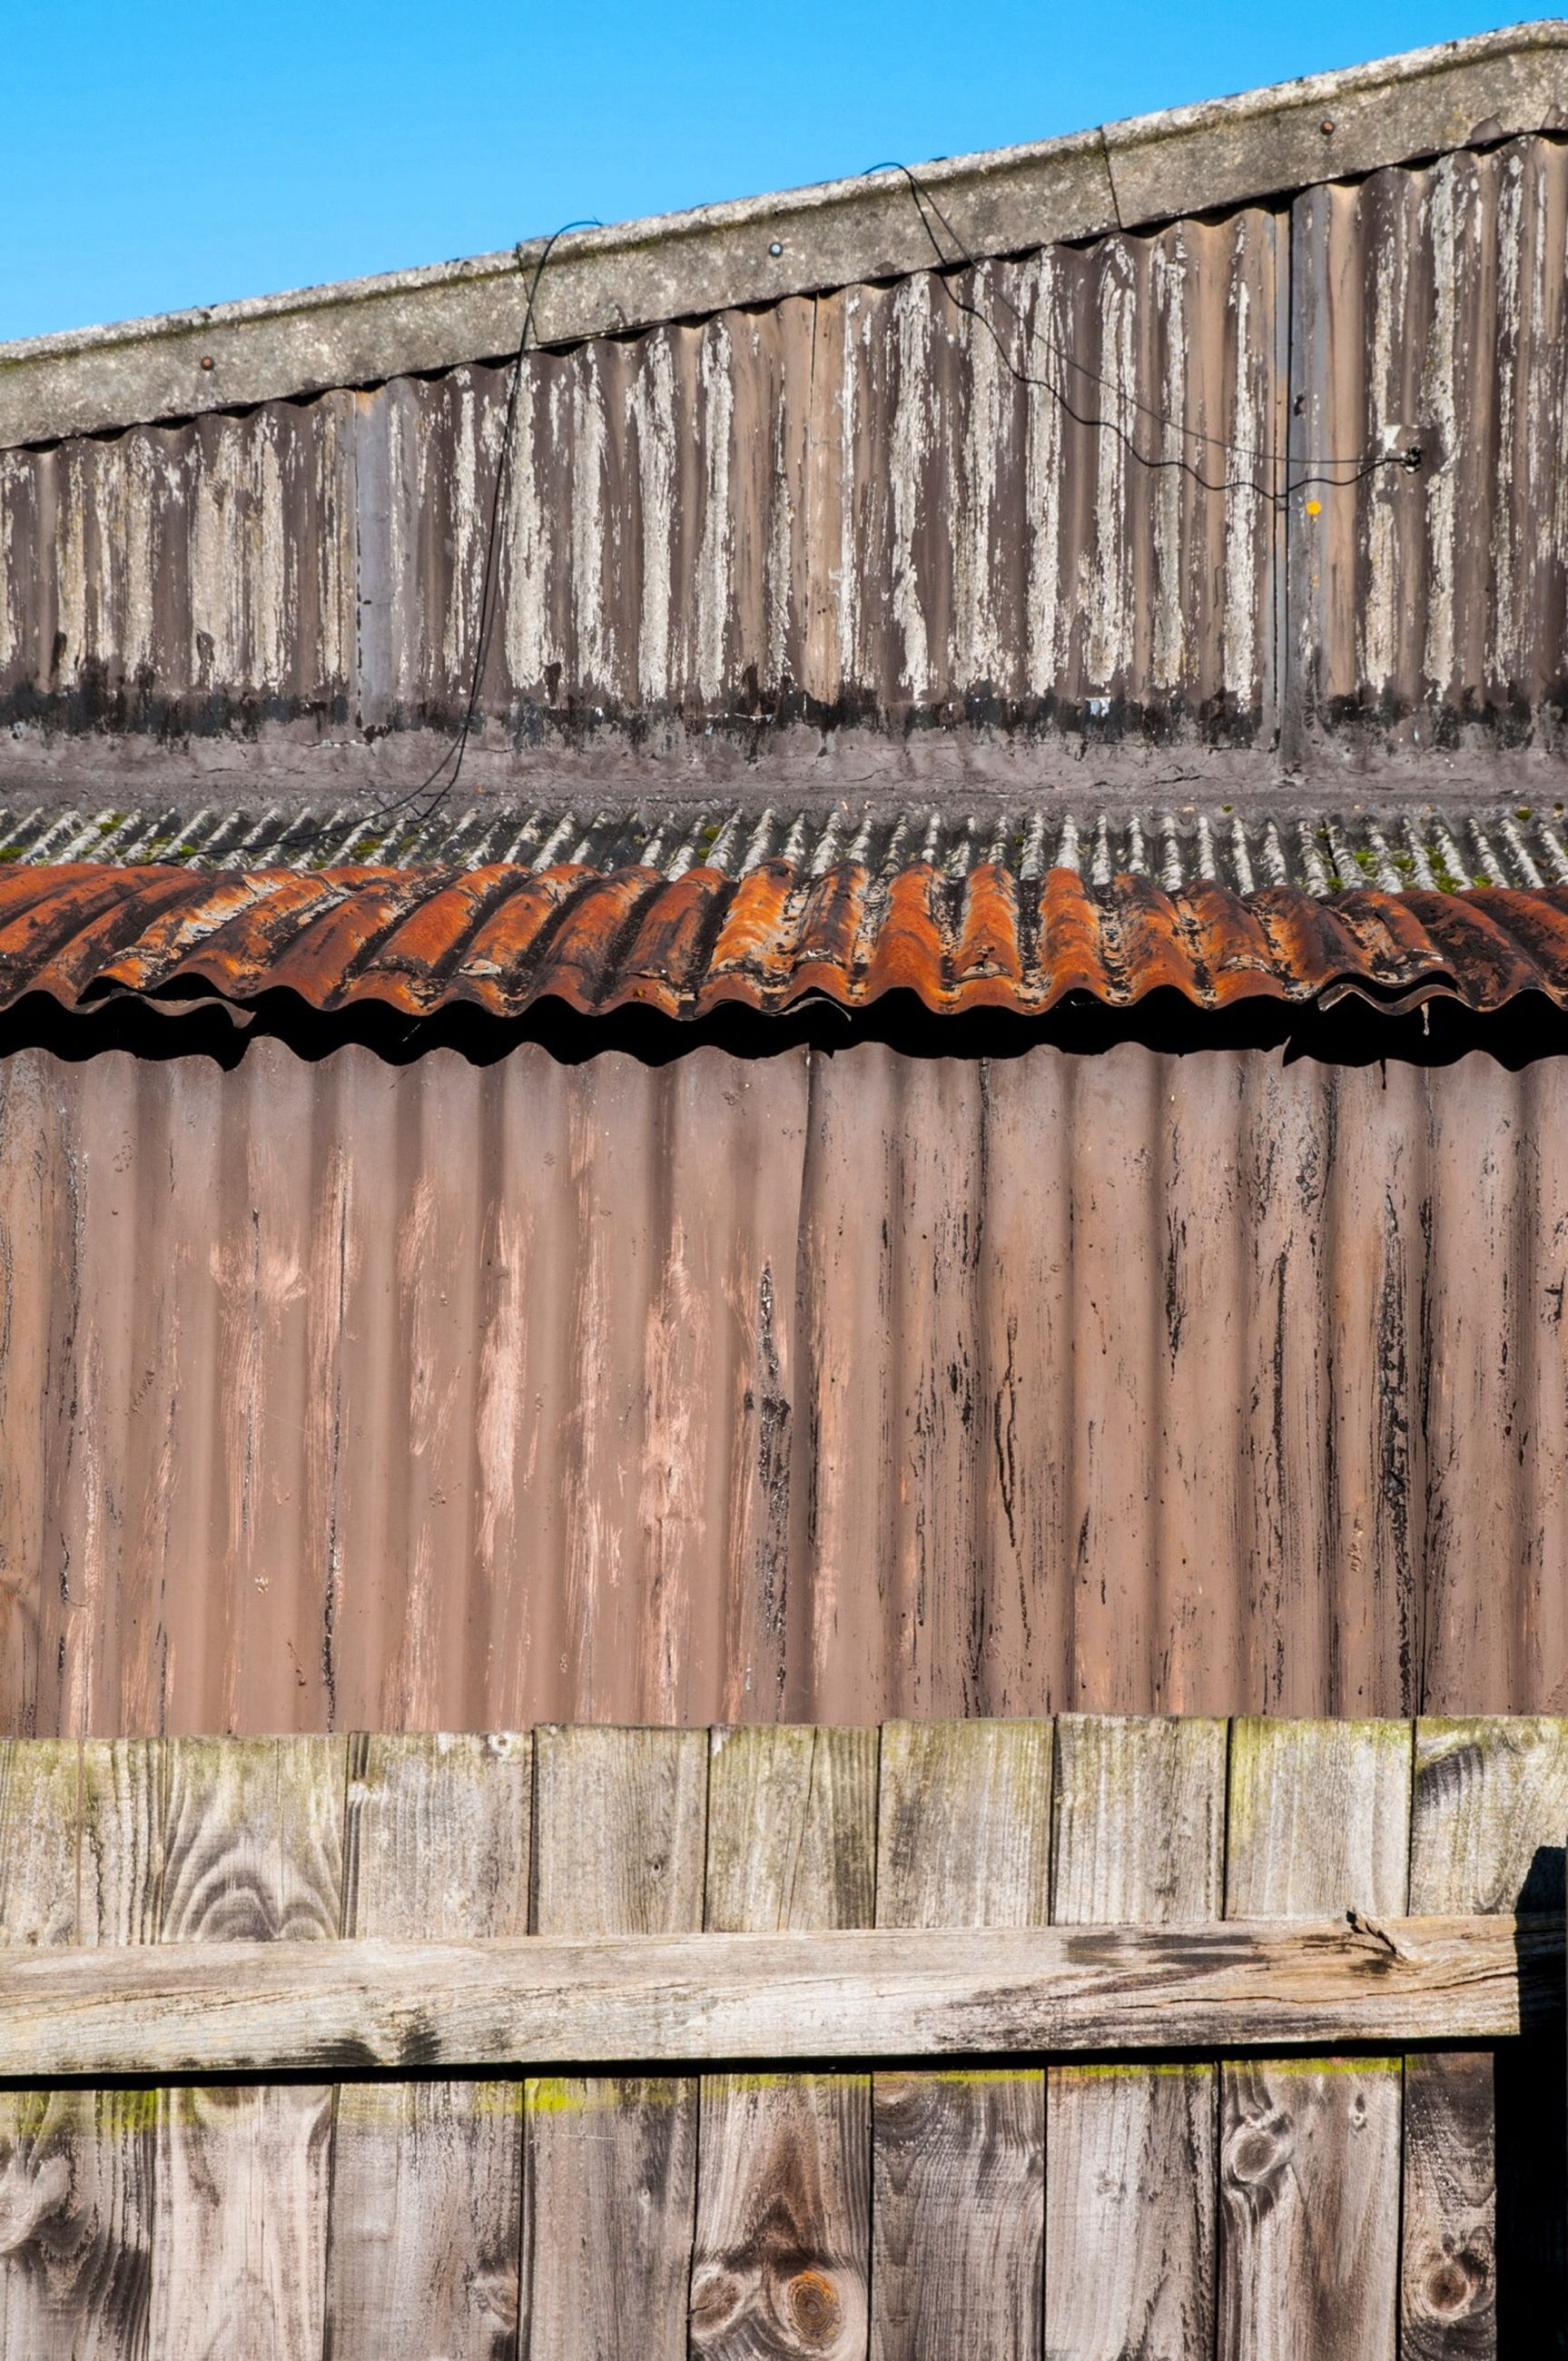 architecture, building exterior, built structure, low angle view, house, window, old, blue, brick wall, residential structure, building, wood - material, clear sky, wall - building feature, outdoors, day, door, residential building, facade, no people